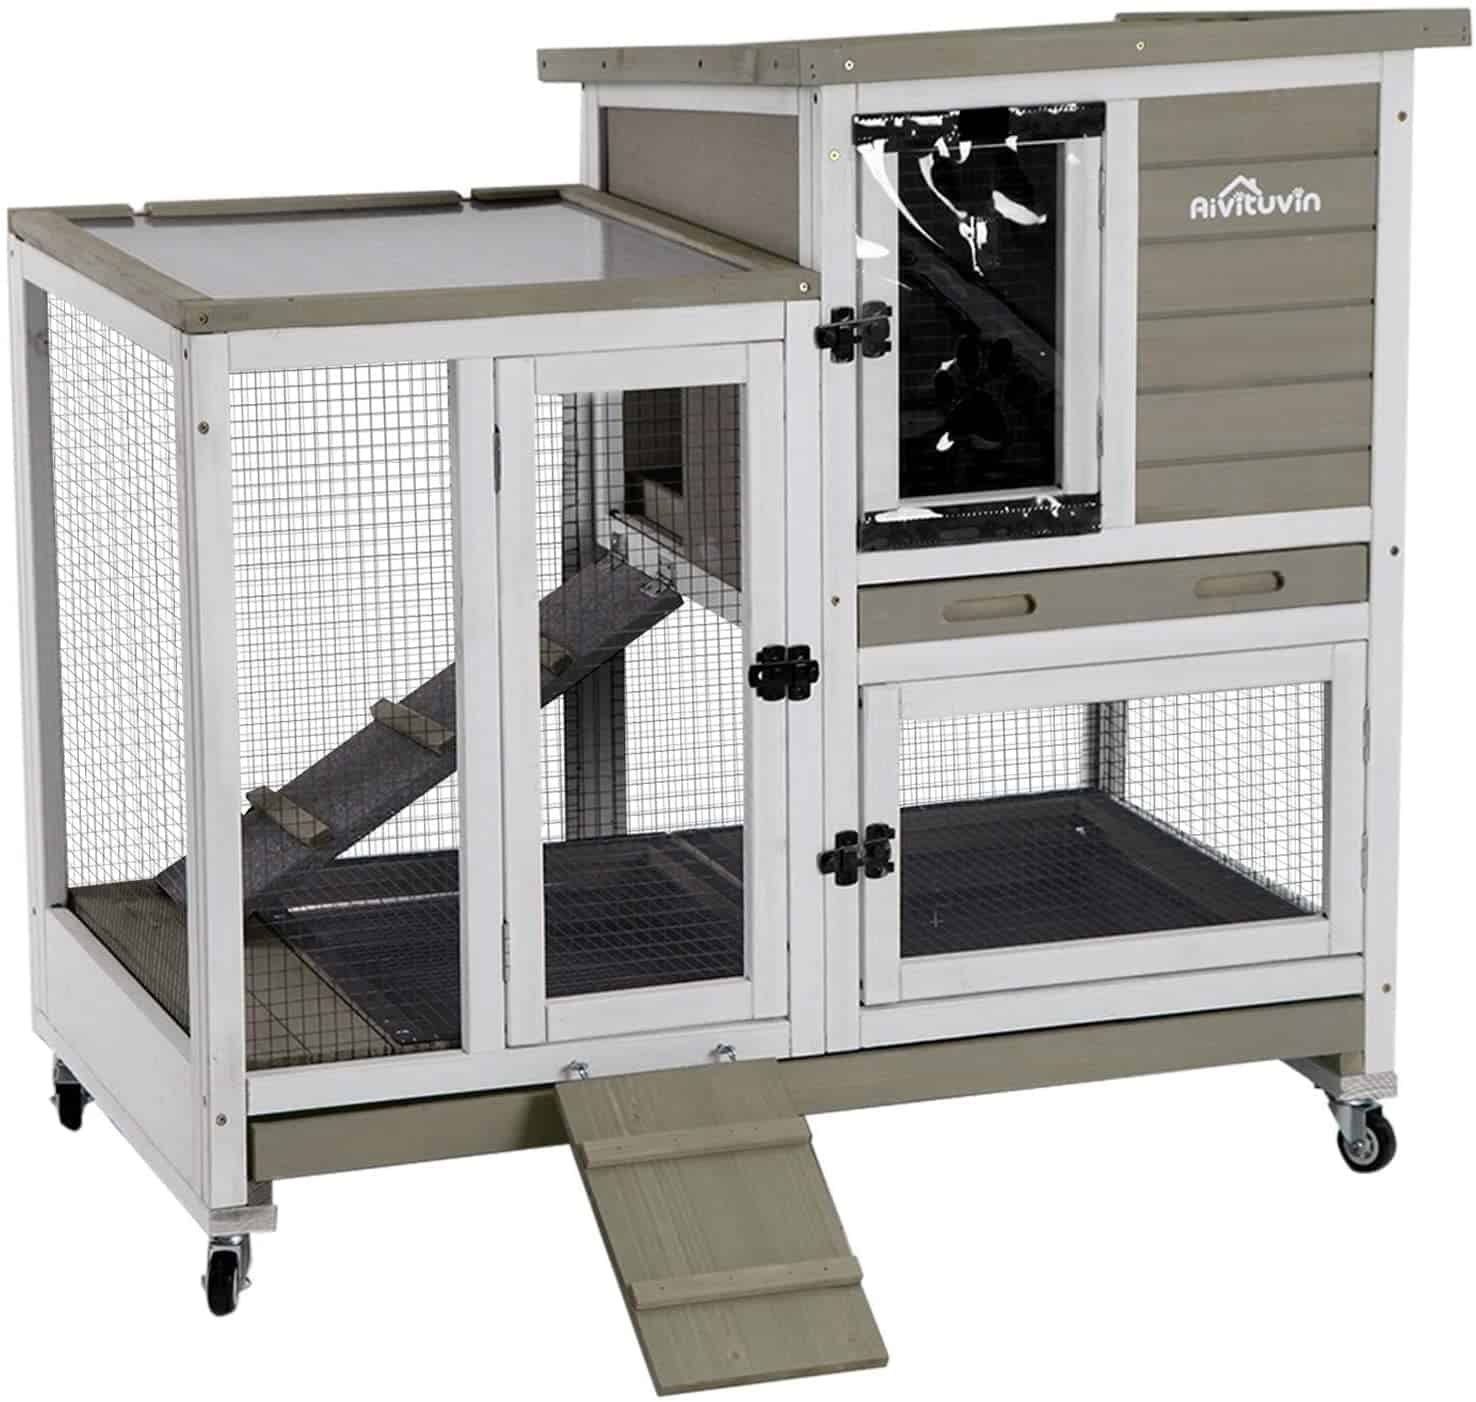 Aivituvin Upgrade Rabbit Hutch with Run and Double Deeper No Leak Tray